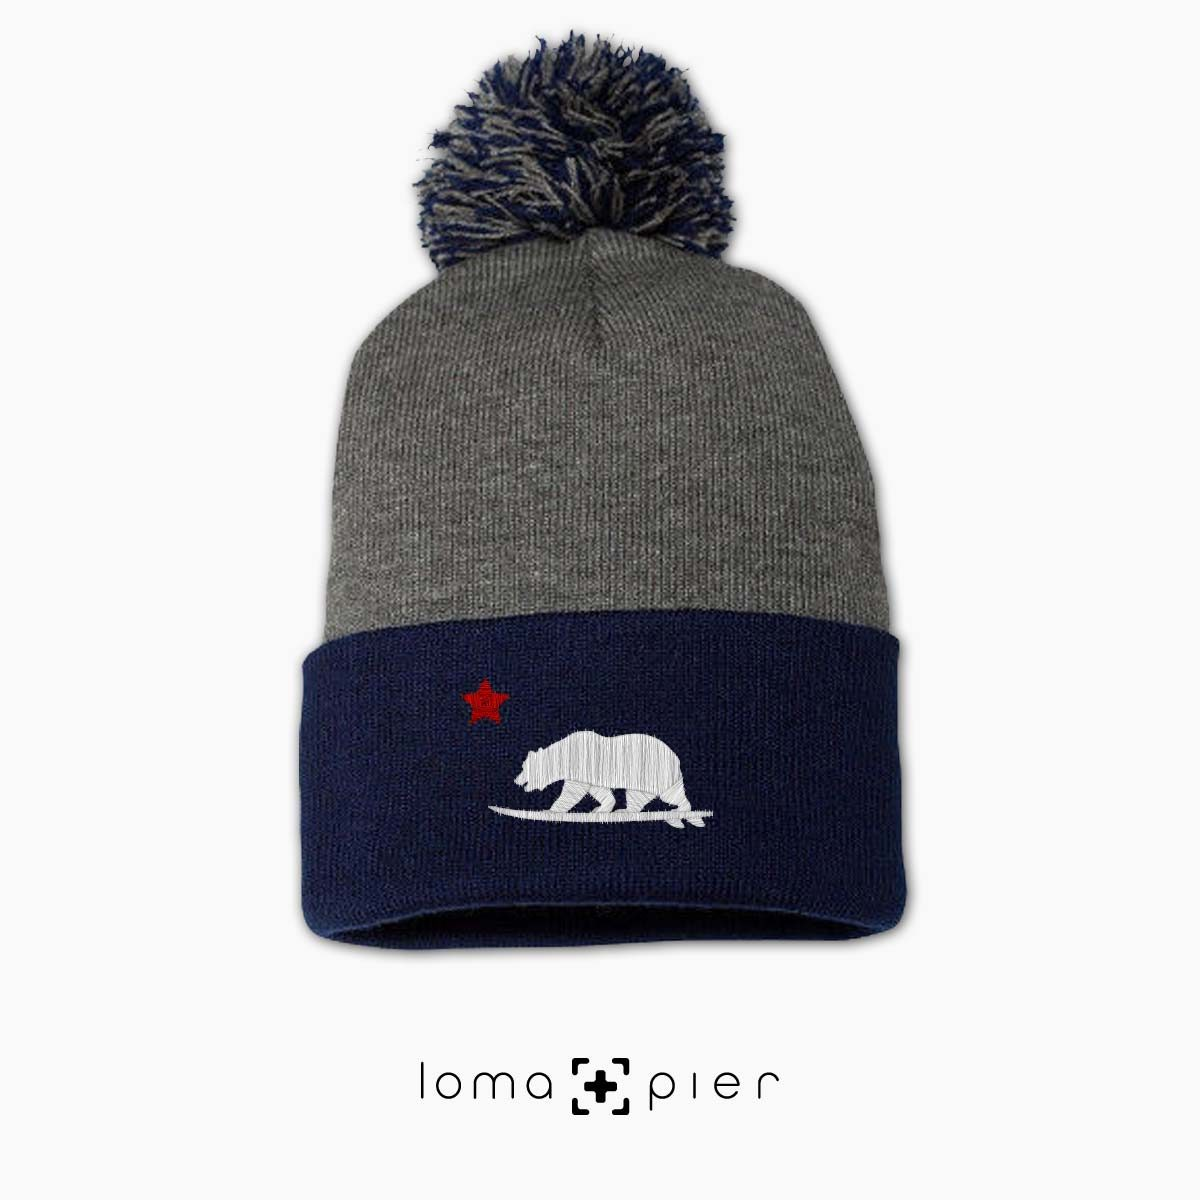 CALIFORNIA BEAR SURFING icon embroidered on a heather grey and navy blue pom pom beanie with white and red thread by loma+pier hat store